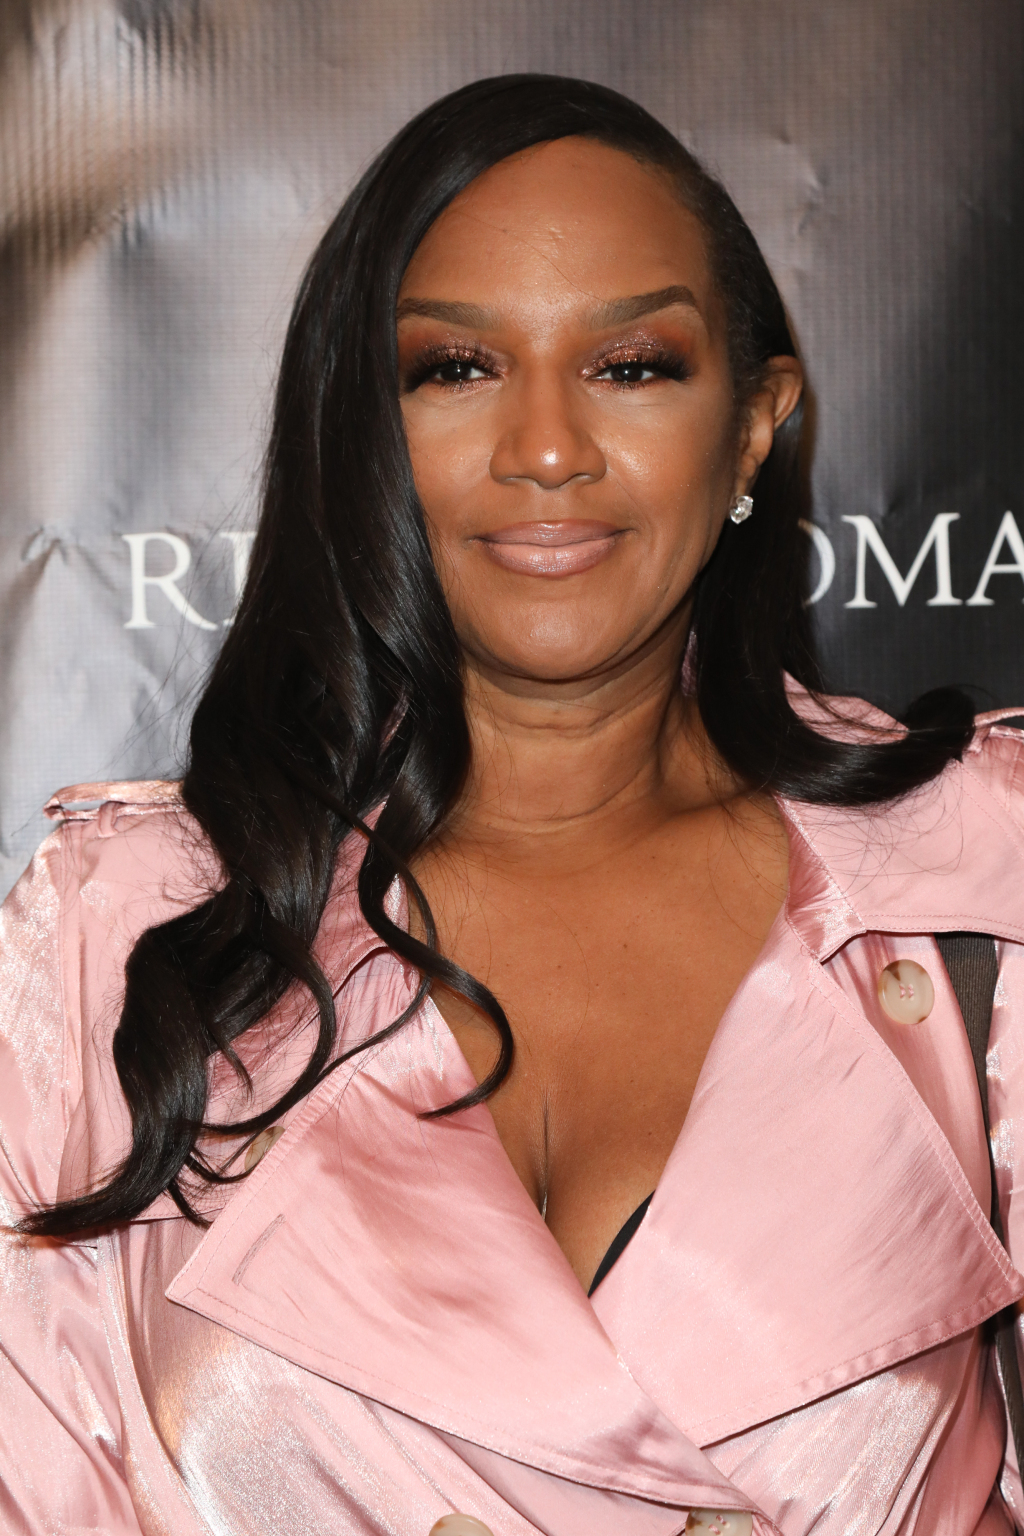 Basketball Wives: Jackie Didn't Start The Rumor About Malaysia's Kids, But She Messed Up When She Started Spreading It